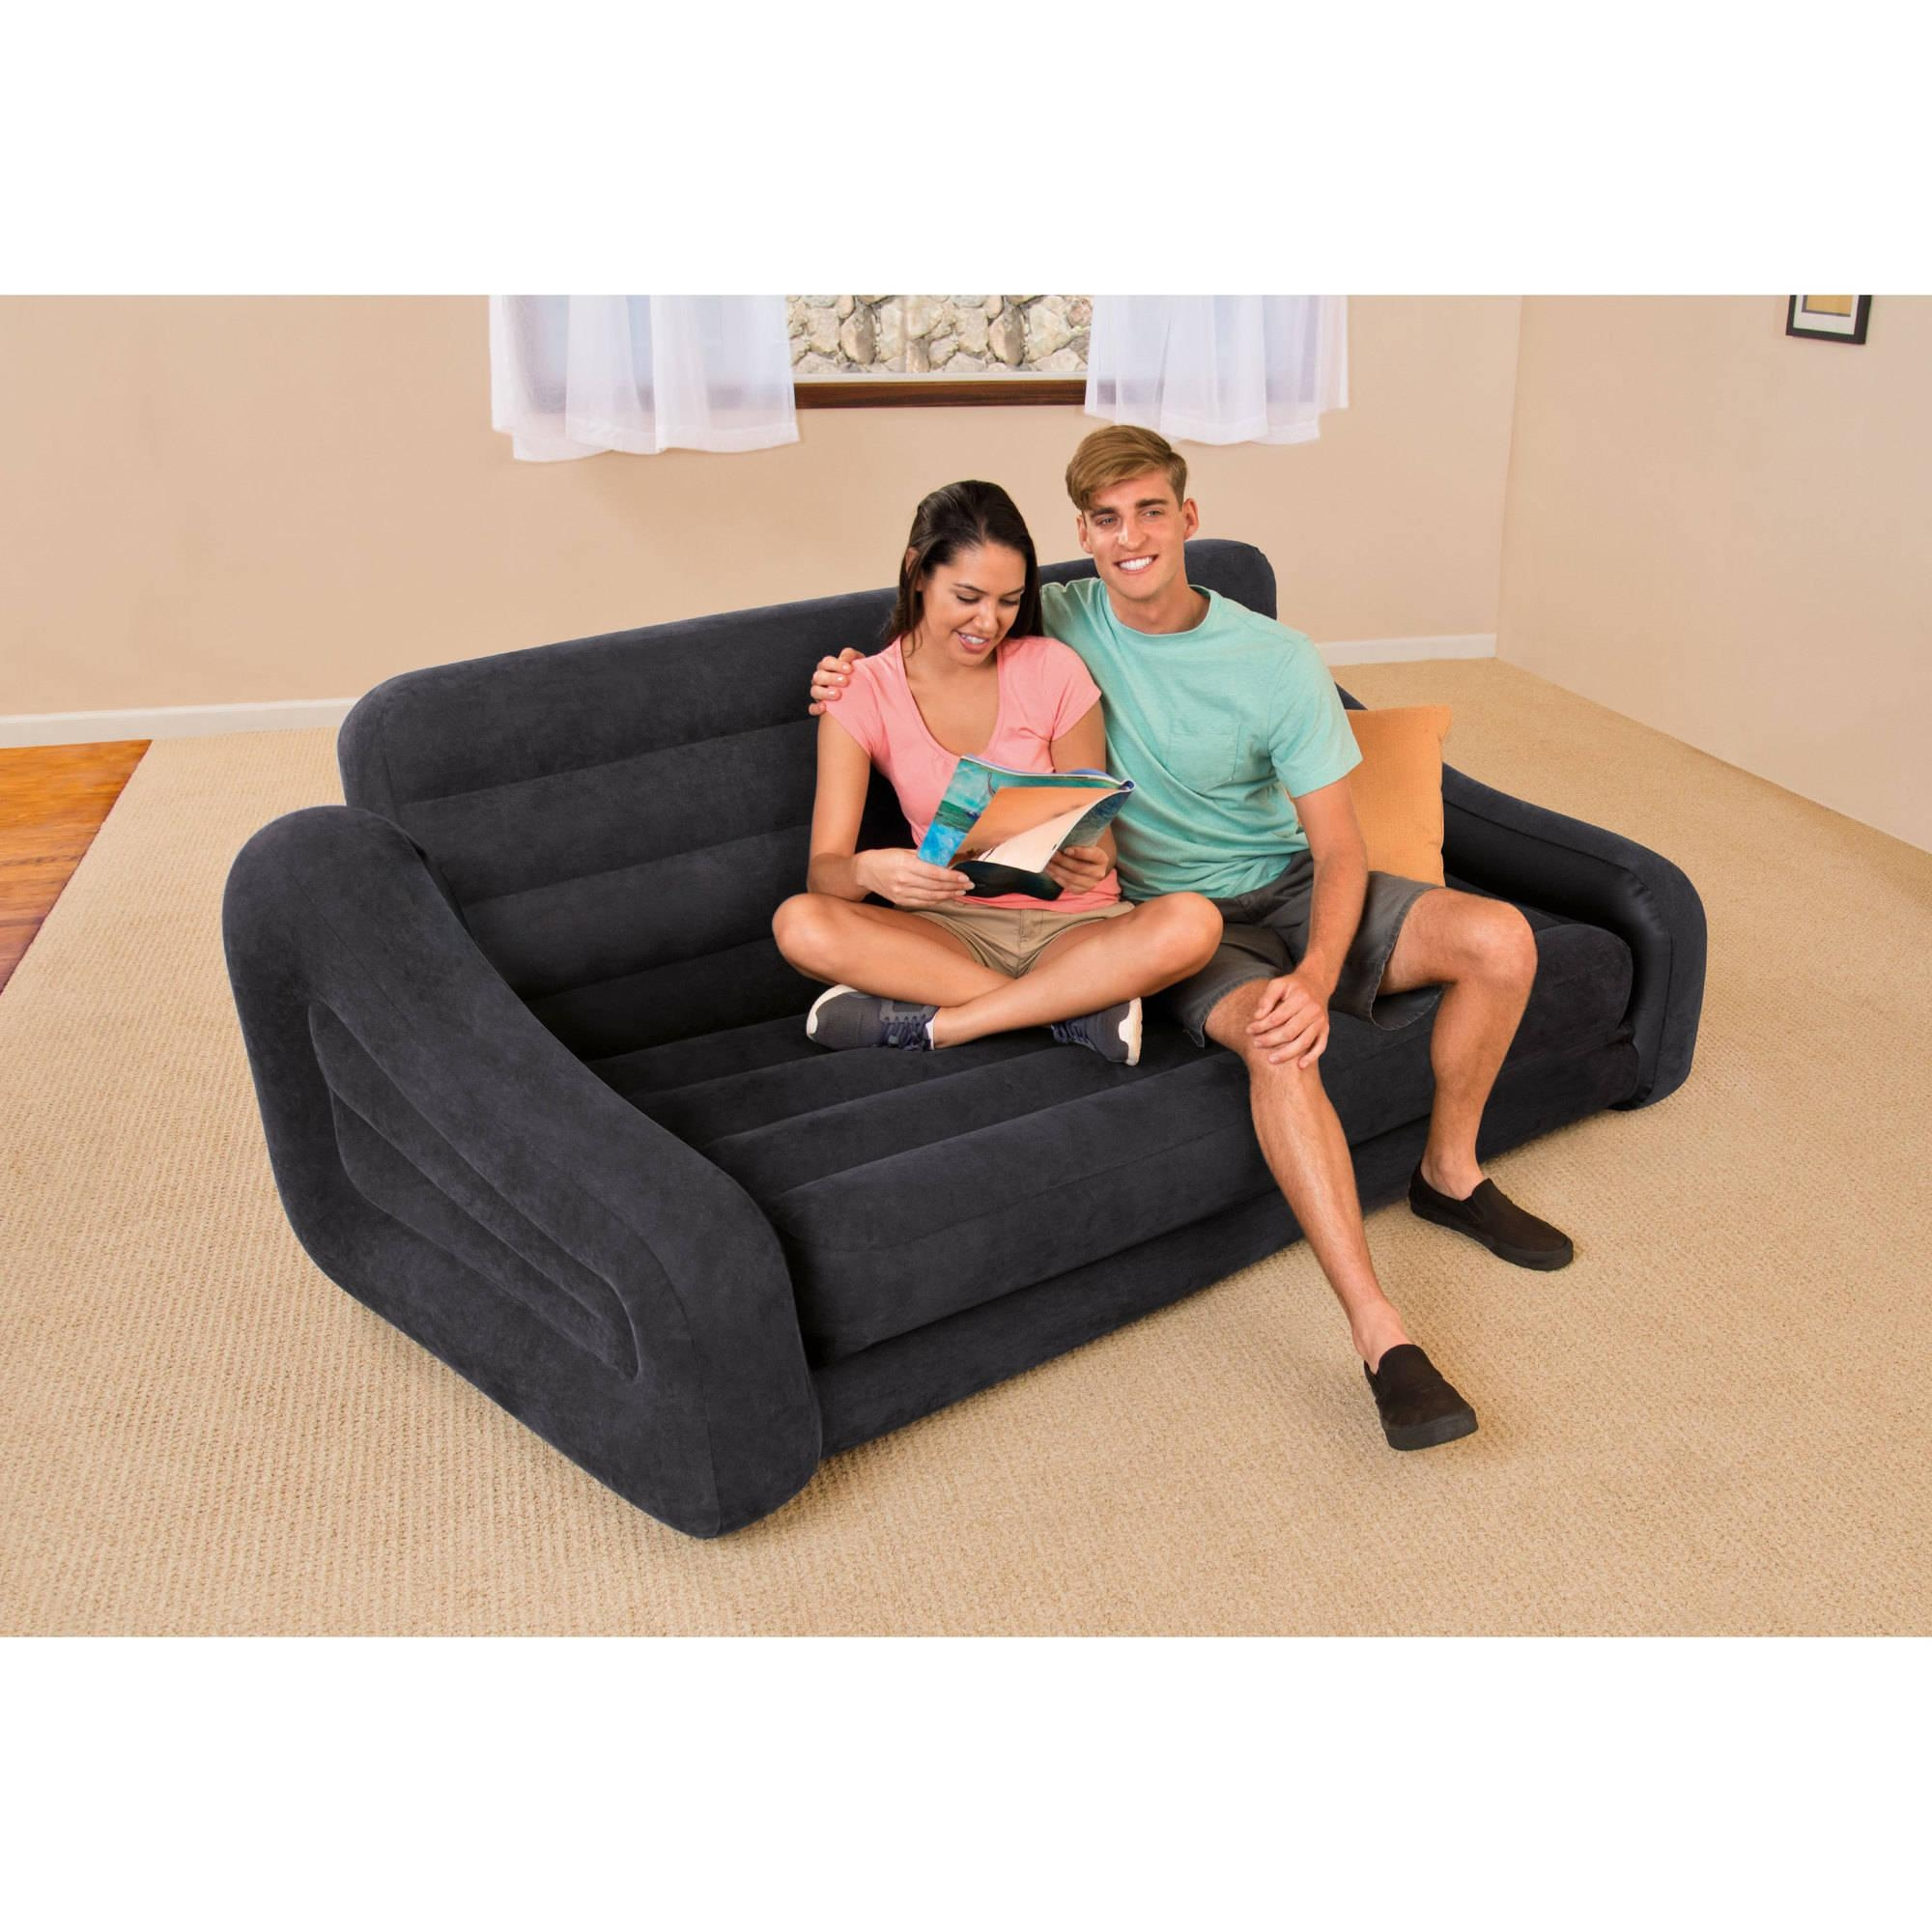 Intex Queen Inflatable Pull Out Sofa Bed – Walmart Regarding Pull Out Queen Size Bed Sofas (Image 14 of 20)